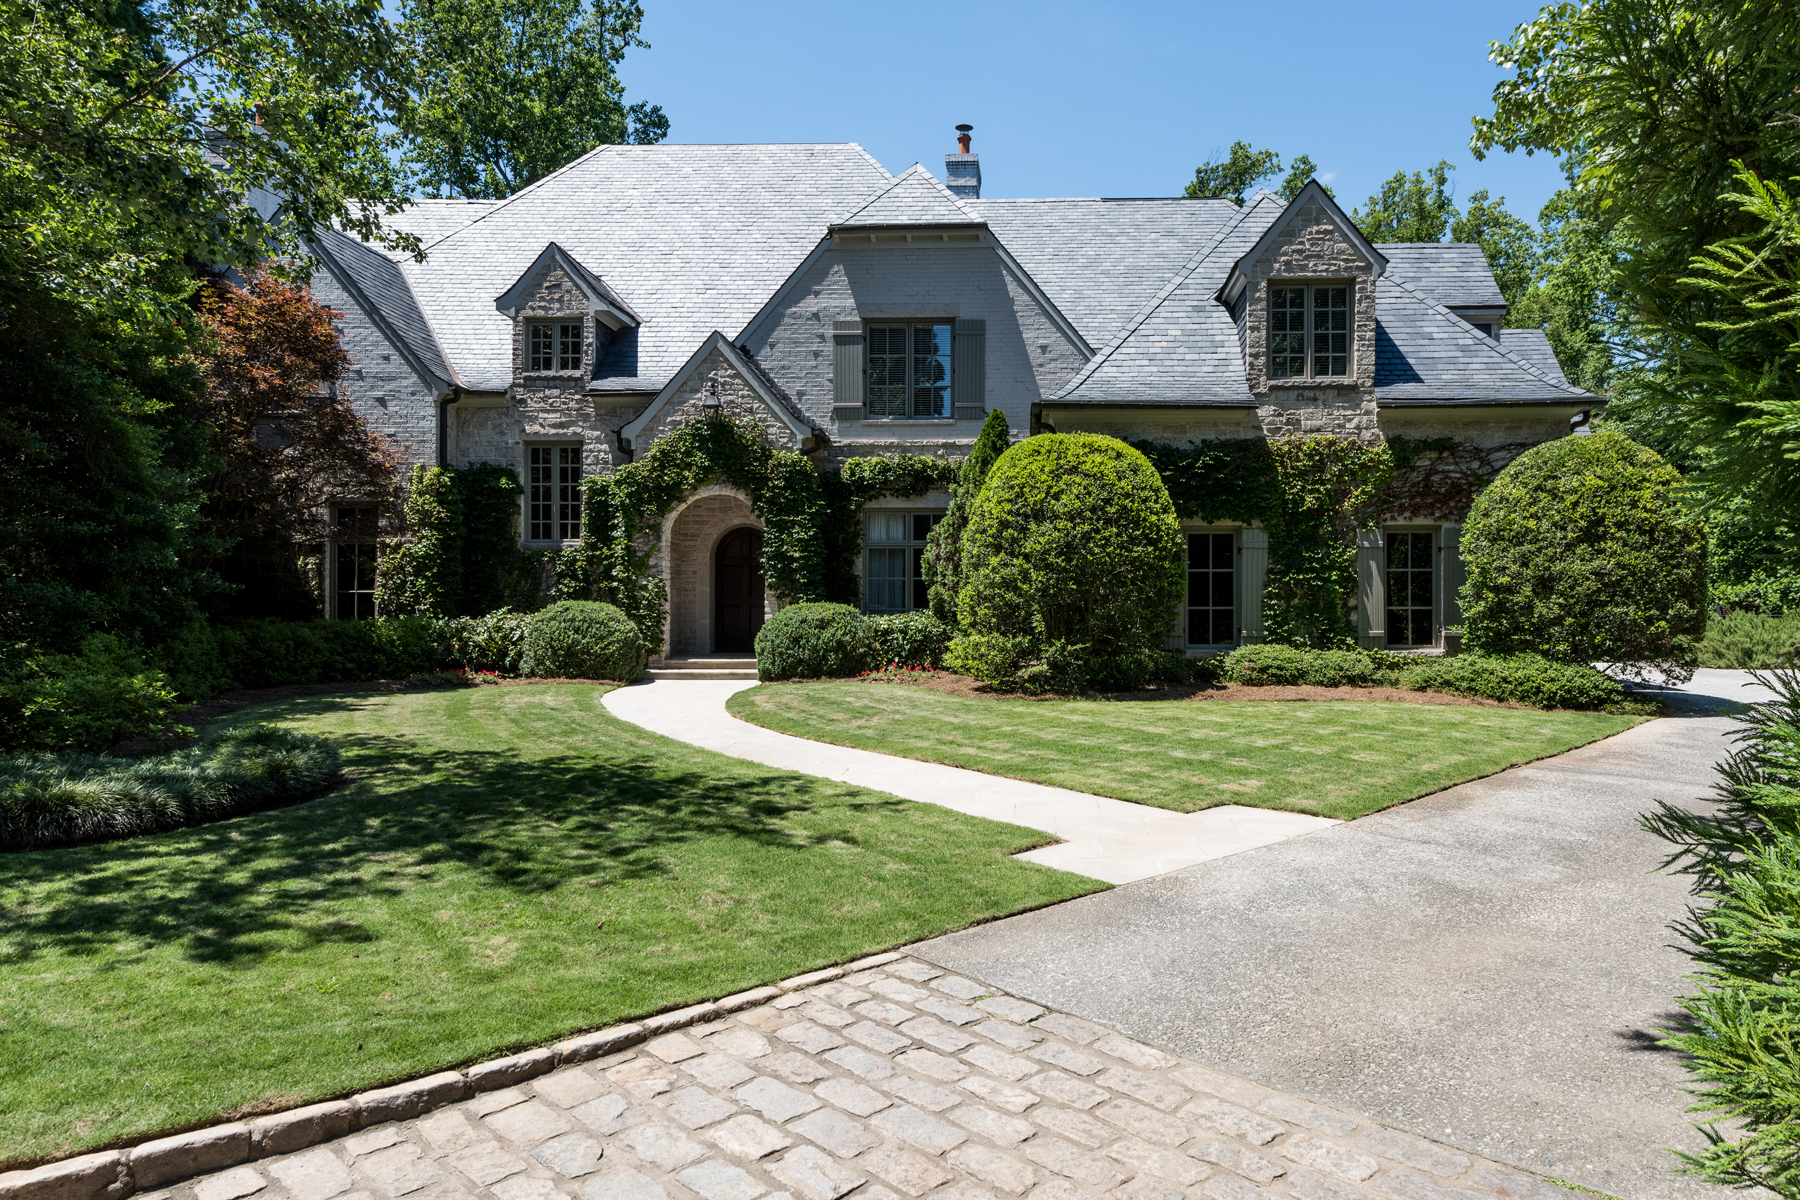 Casa para uma família para Venda às Elegant Stone And Brick Beauty In Buckhead's Prestigious Gated 14 Home Community 675 W Paces Ferry Road NW House #9, Buckhead, Atlanta, Geórgia, 30327 Estados Unidos